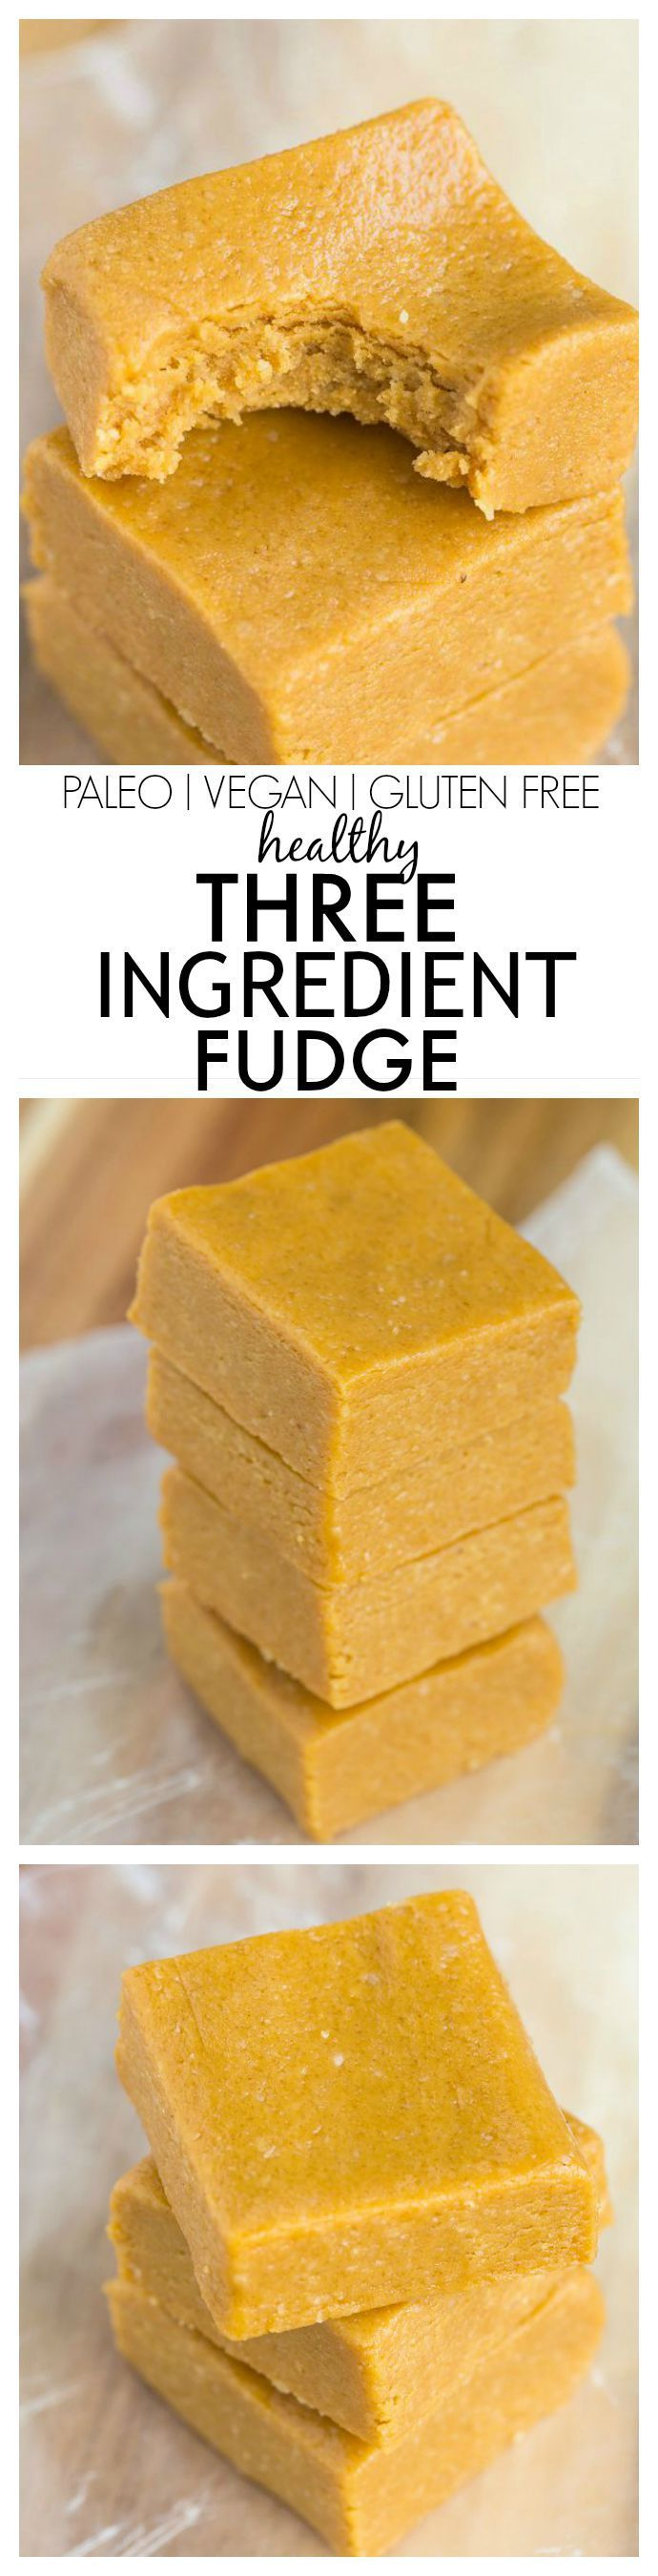 Three Ingredient No Bake Fudge which melts in your mouth and takes 5 minutes! An easy snack or dessert recipe which is Paleo, #vegan and #glutenfree too!